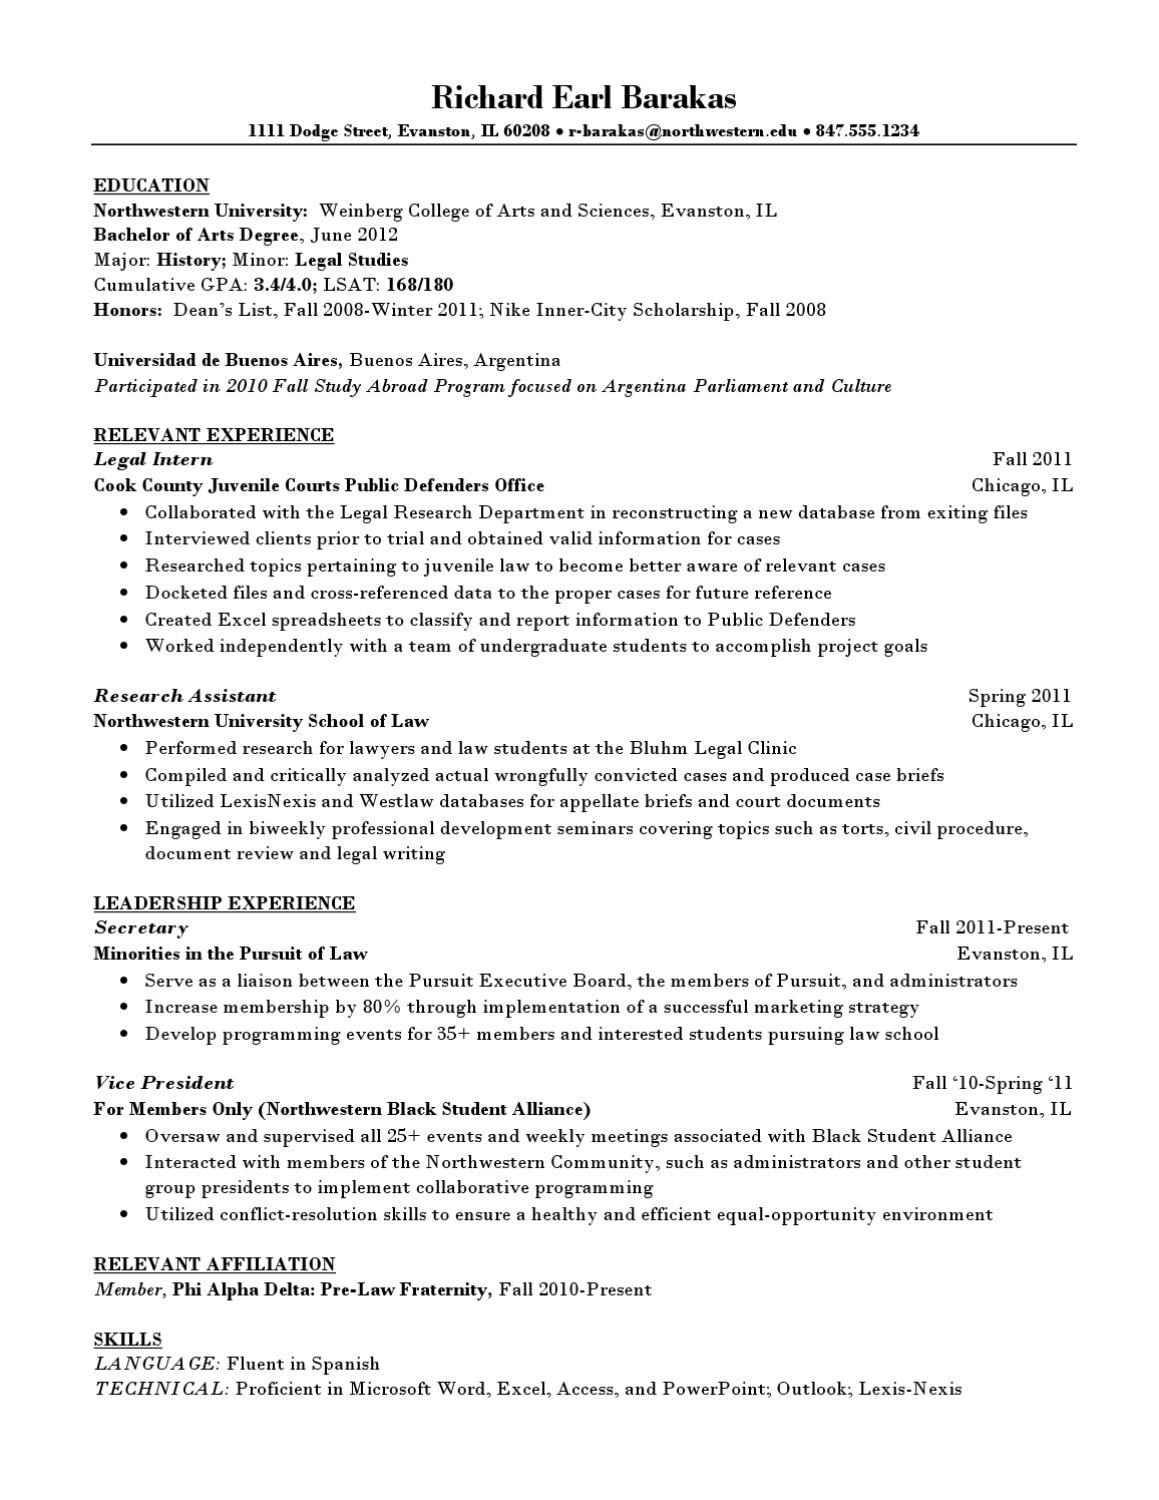 northwestern university resume samples